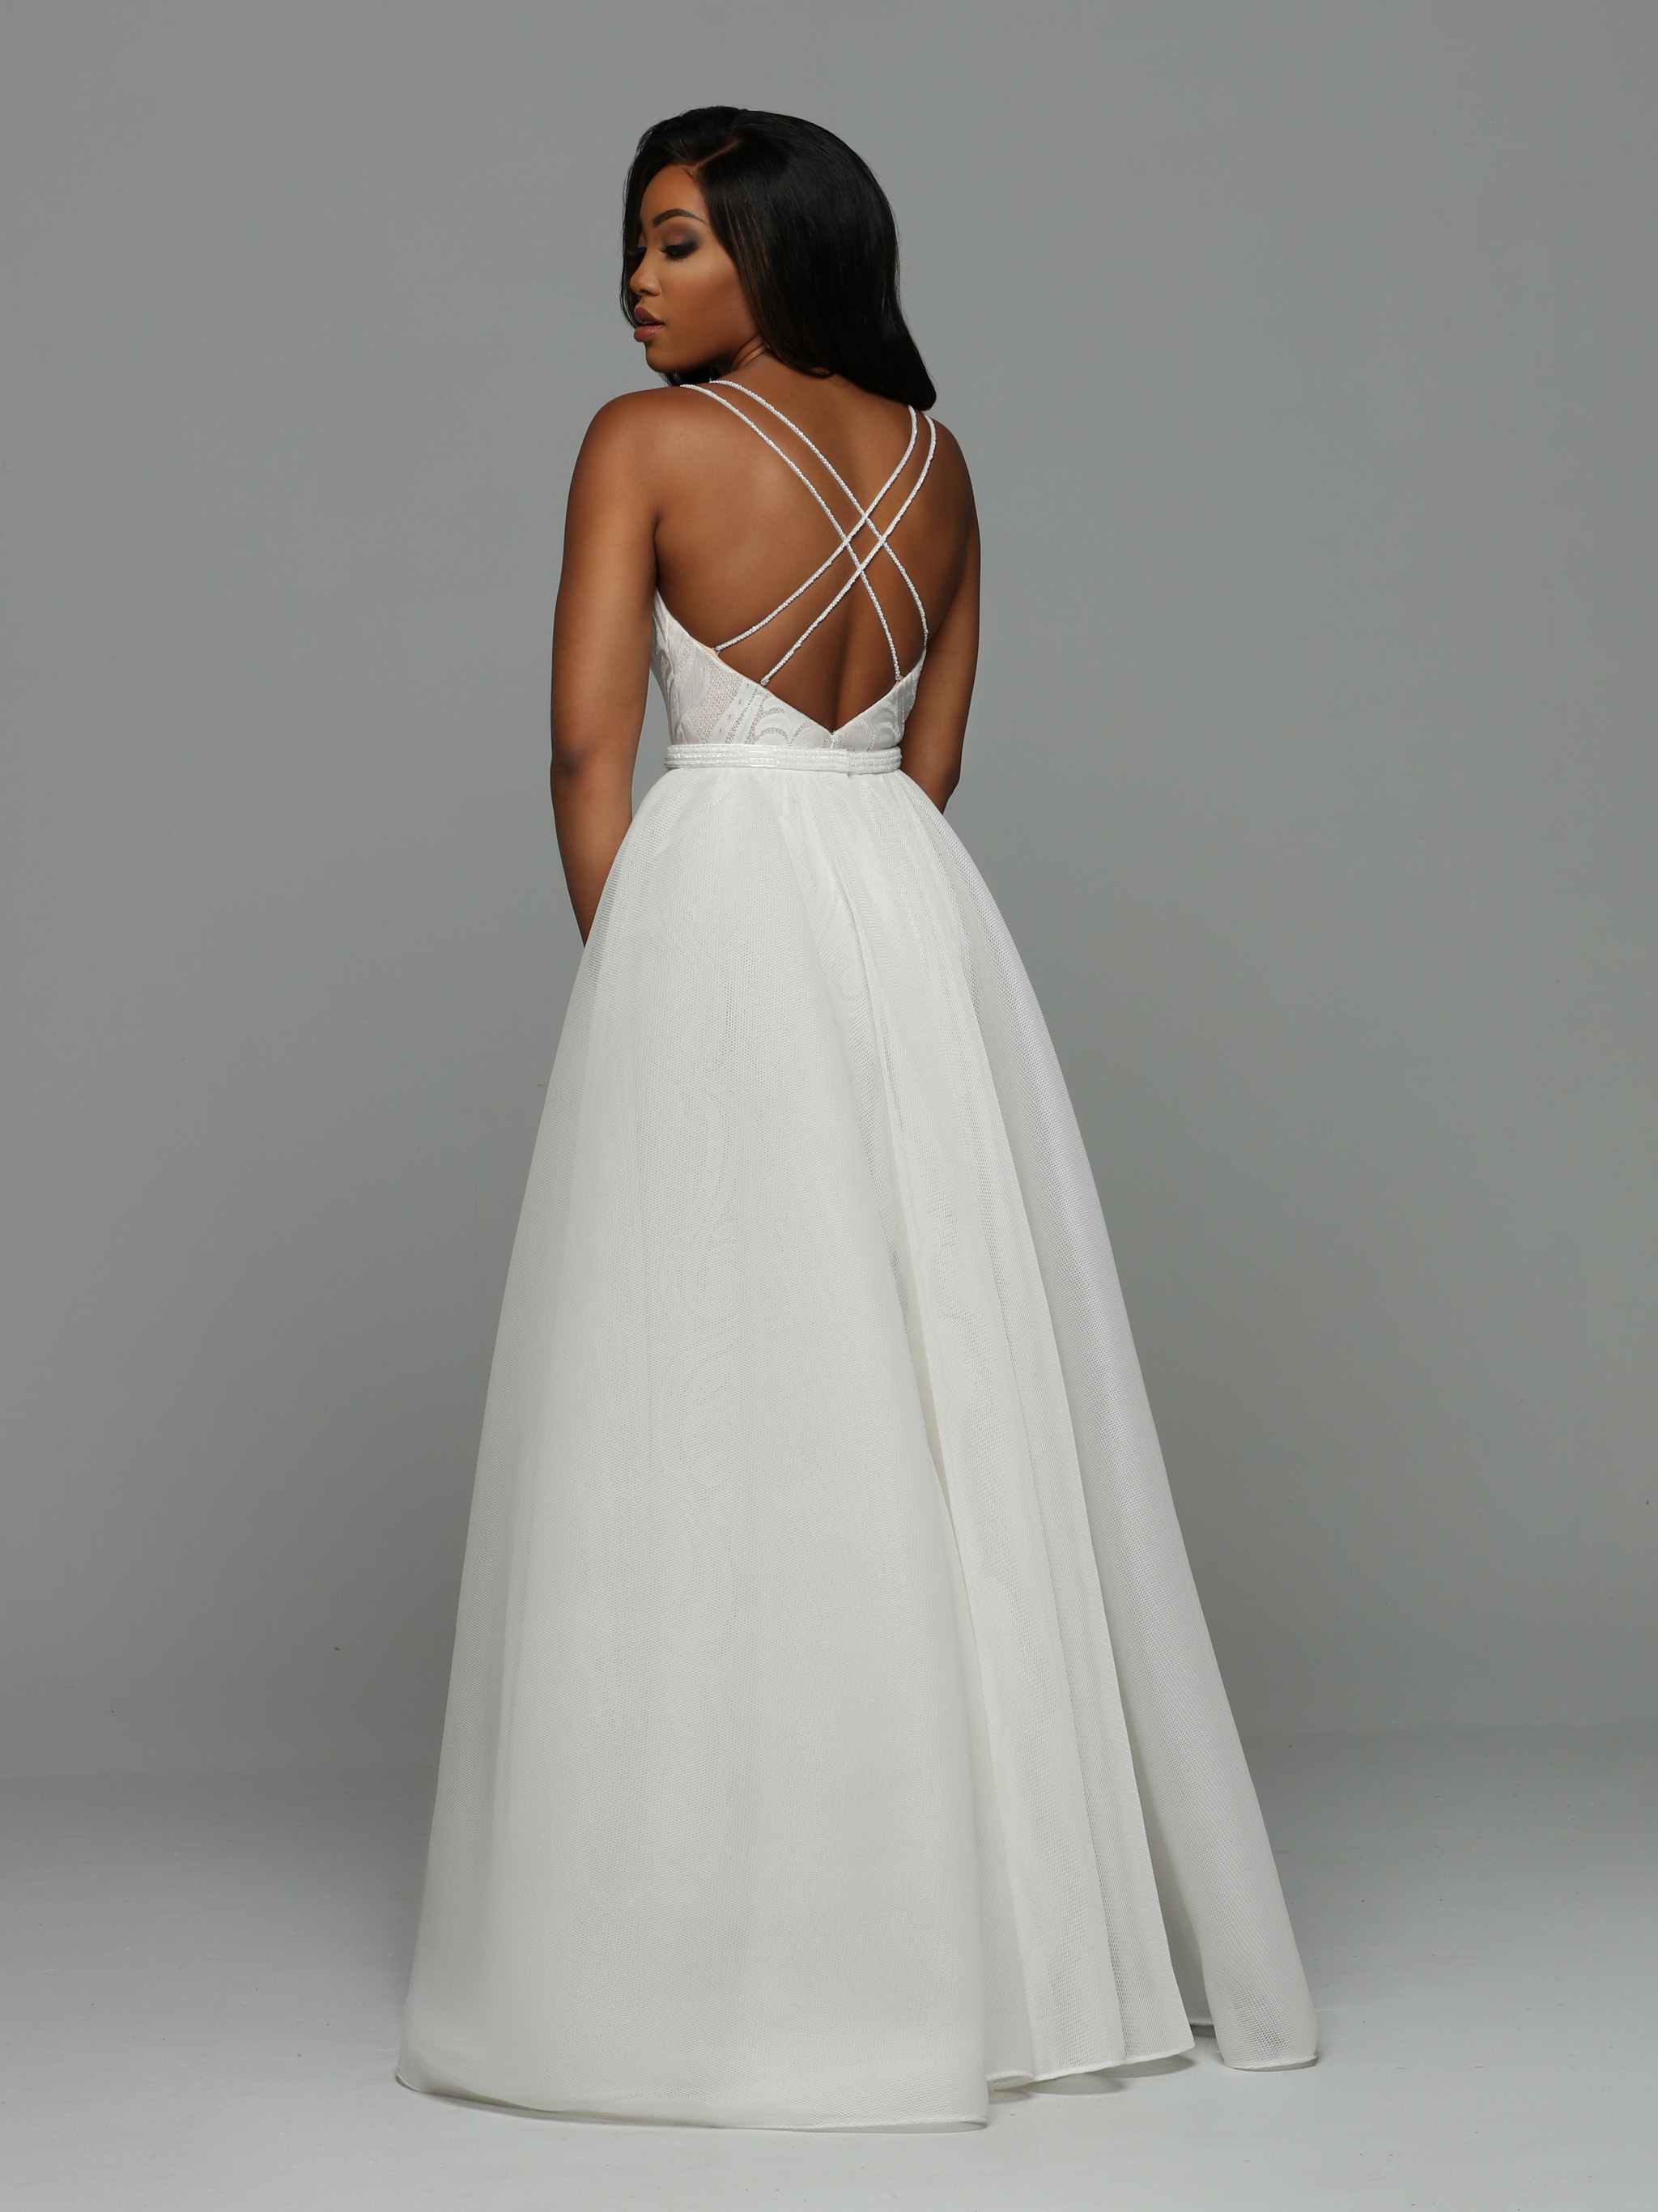 Image showing back view of style #72001